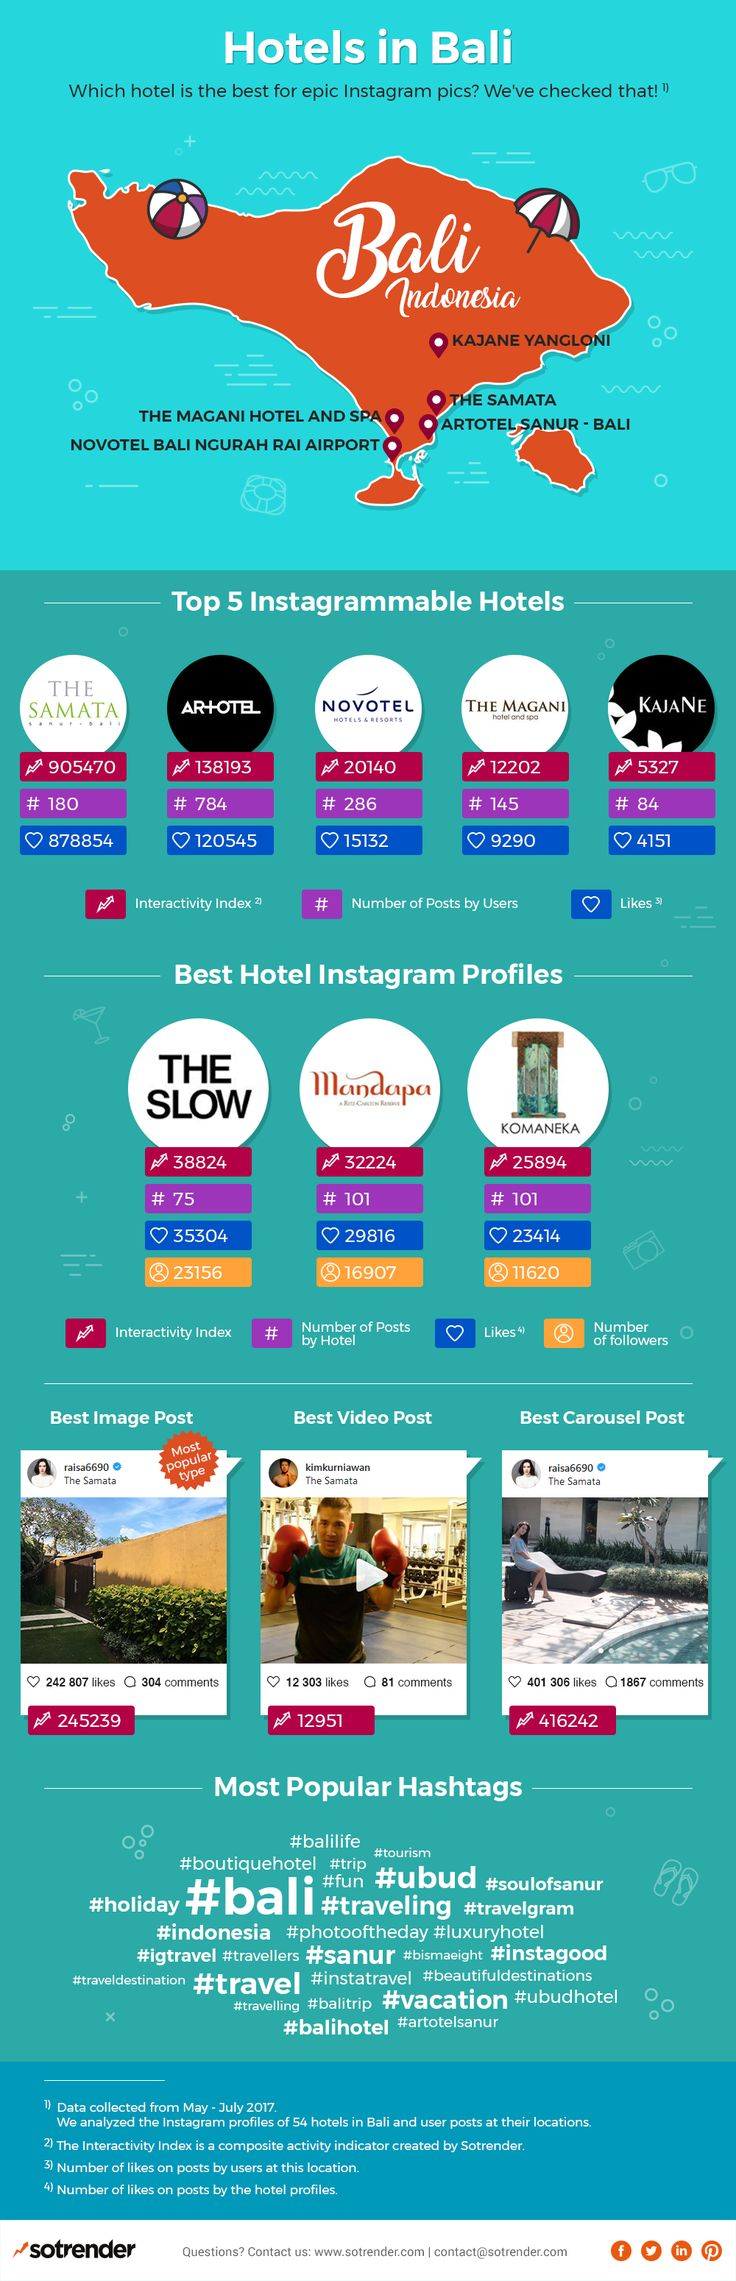 This summer, we tried to find the hottest hotels and their locations in Bali, Indonesia on Instagram. From clear waters to showing off beach bodies, here are the best locations to show off your glorious Bali adventure! Check out our analysis and the infographic for all the sweet details.  Link: https://www.sotrender.com/blog/2017/09/the-8-most-instagrammable-hotels-bali-infographic/